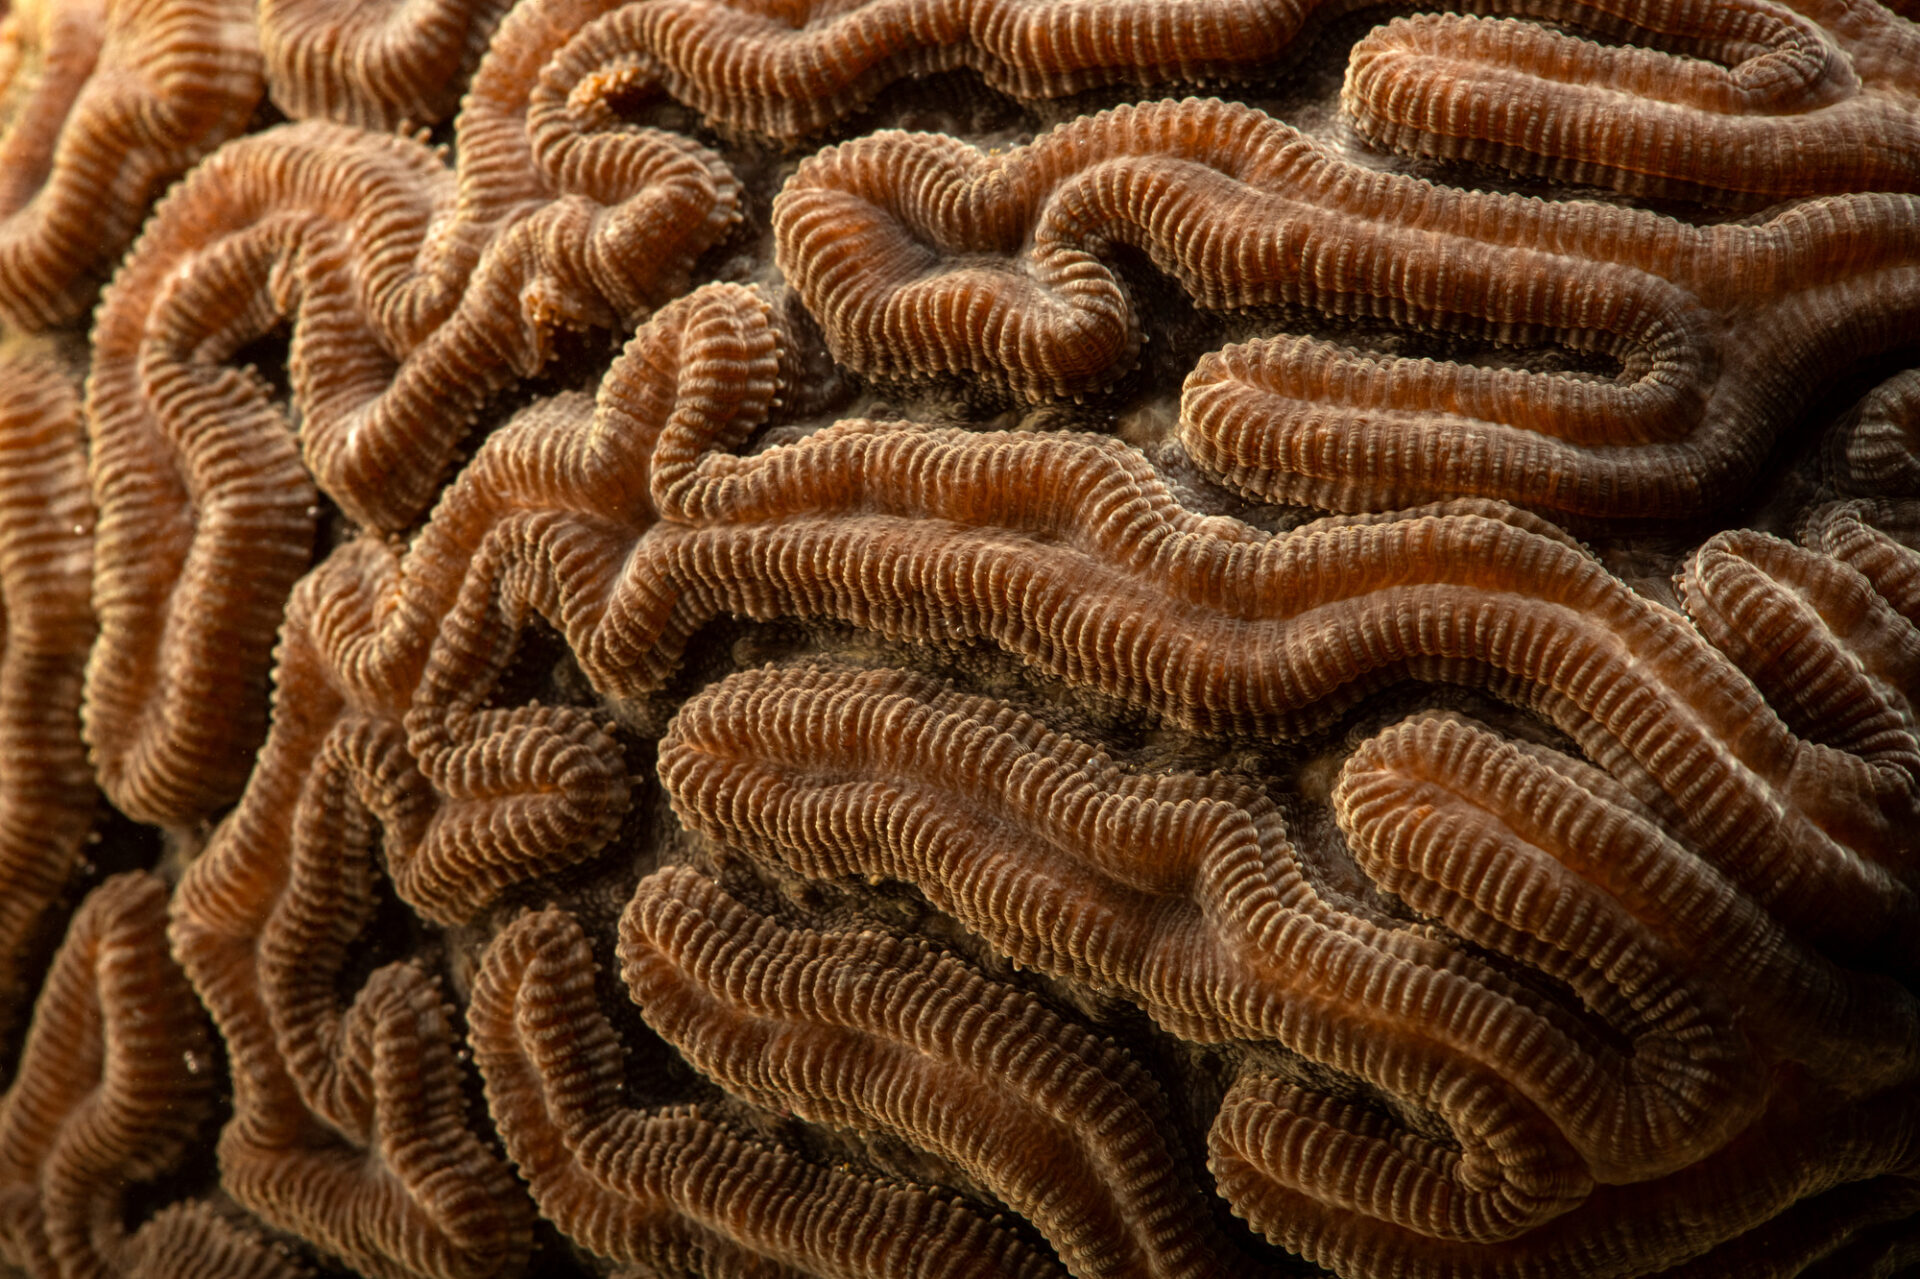 Photo: A grooved brain coral (Diploria labyrinthiformis) at Riverbanks Zoo and Garden.